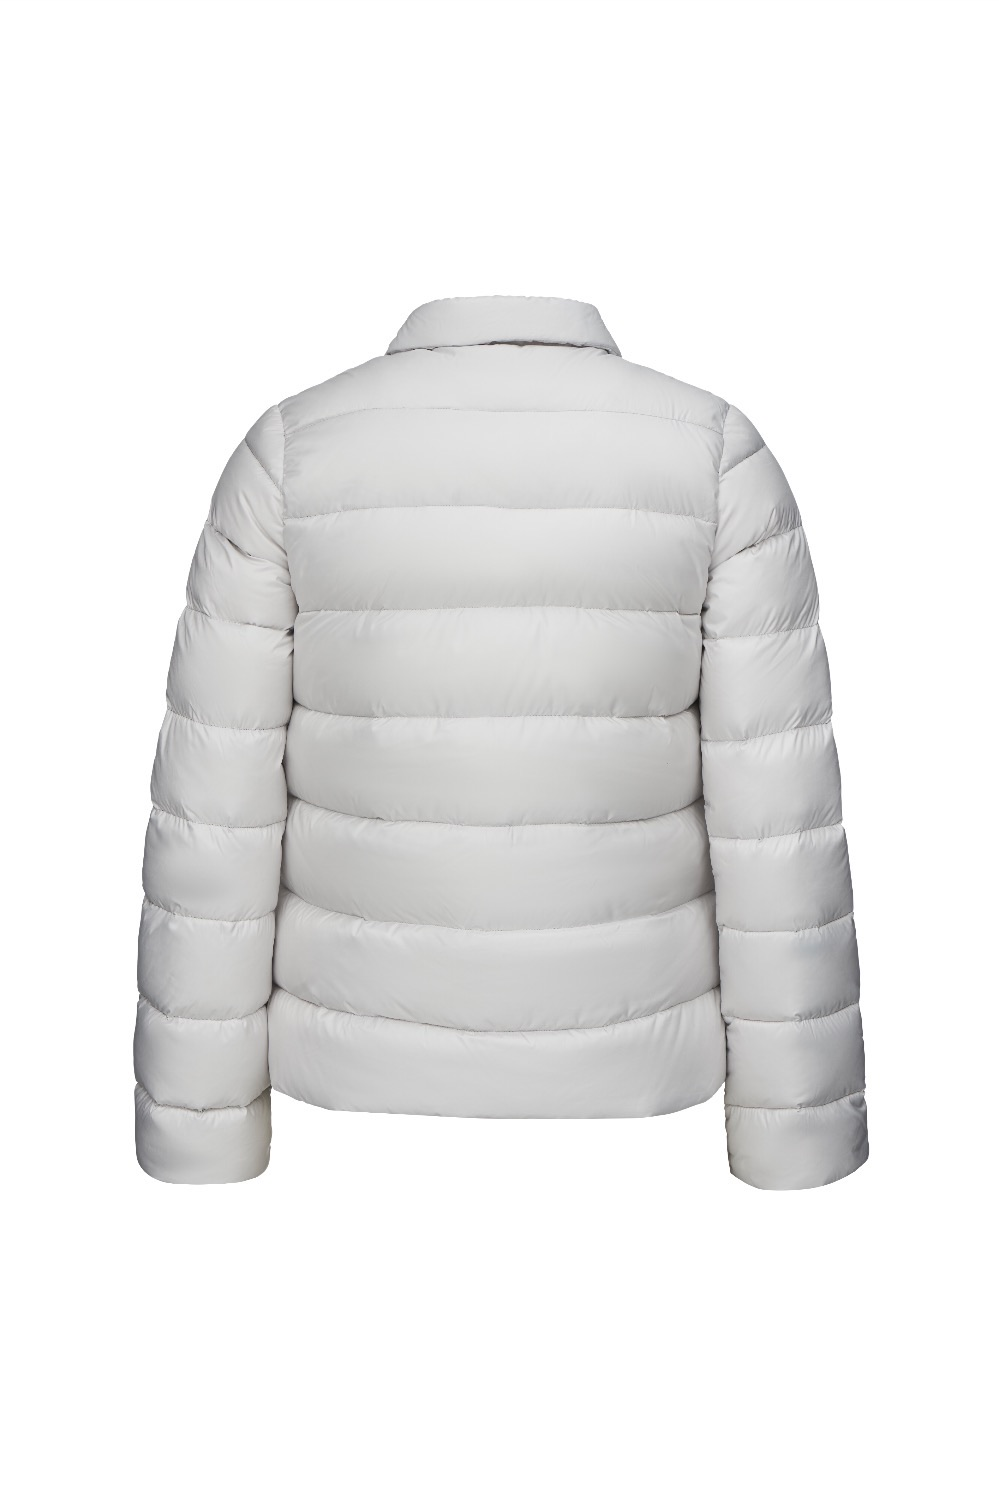 5804a52c SWIMS - Motion Insulator Jacket - Feel Good Store